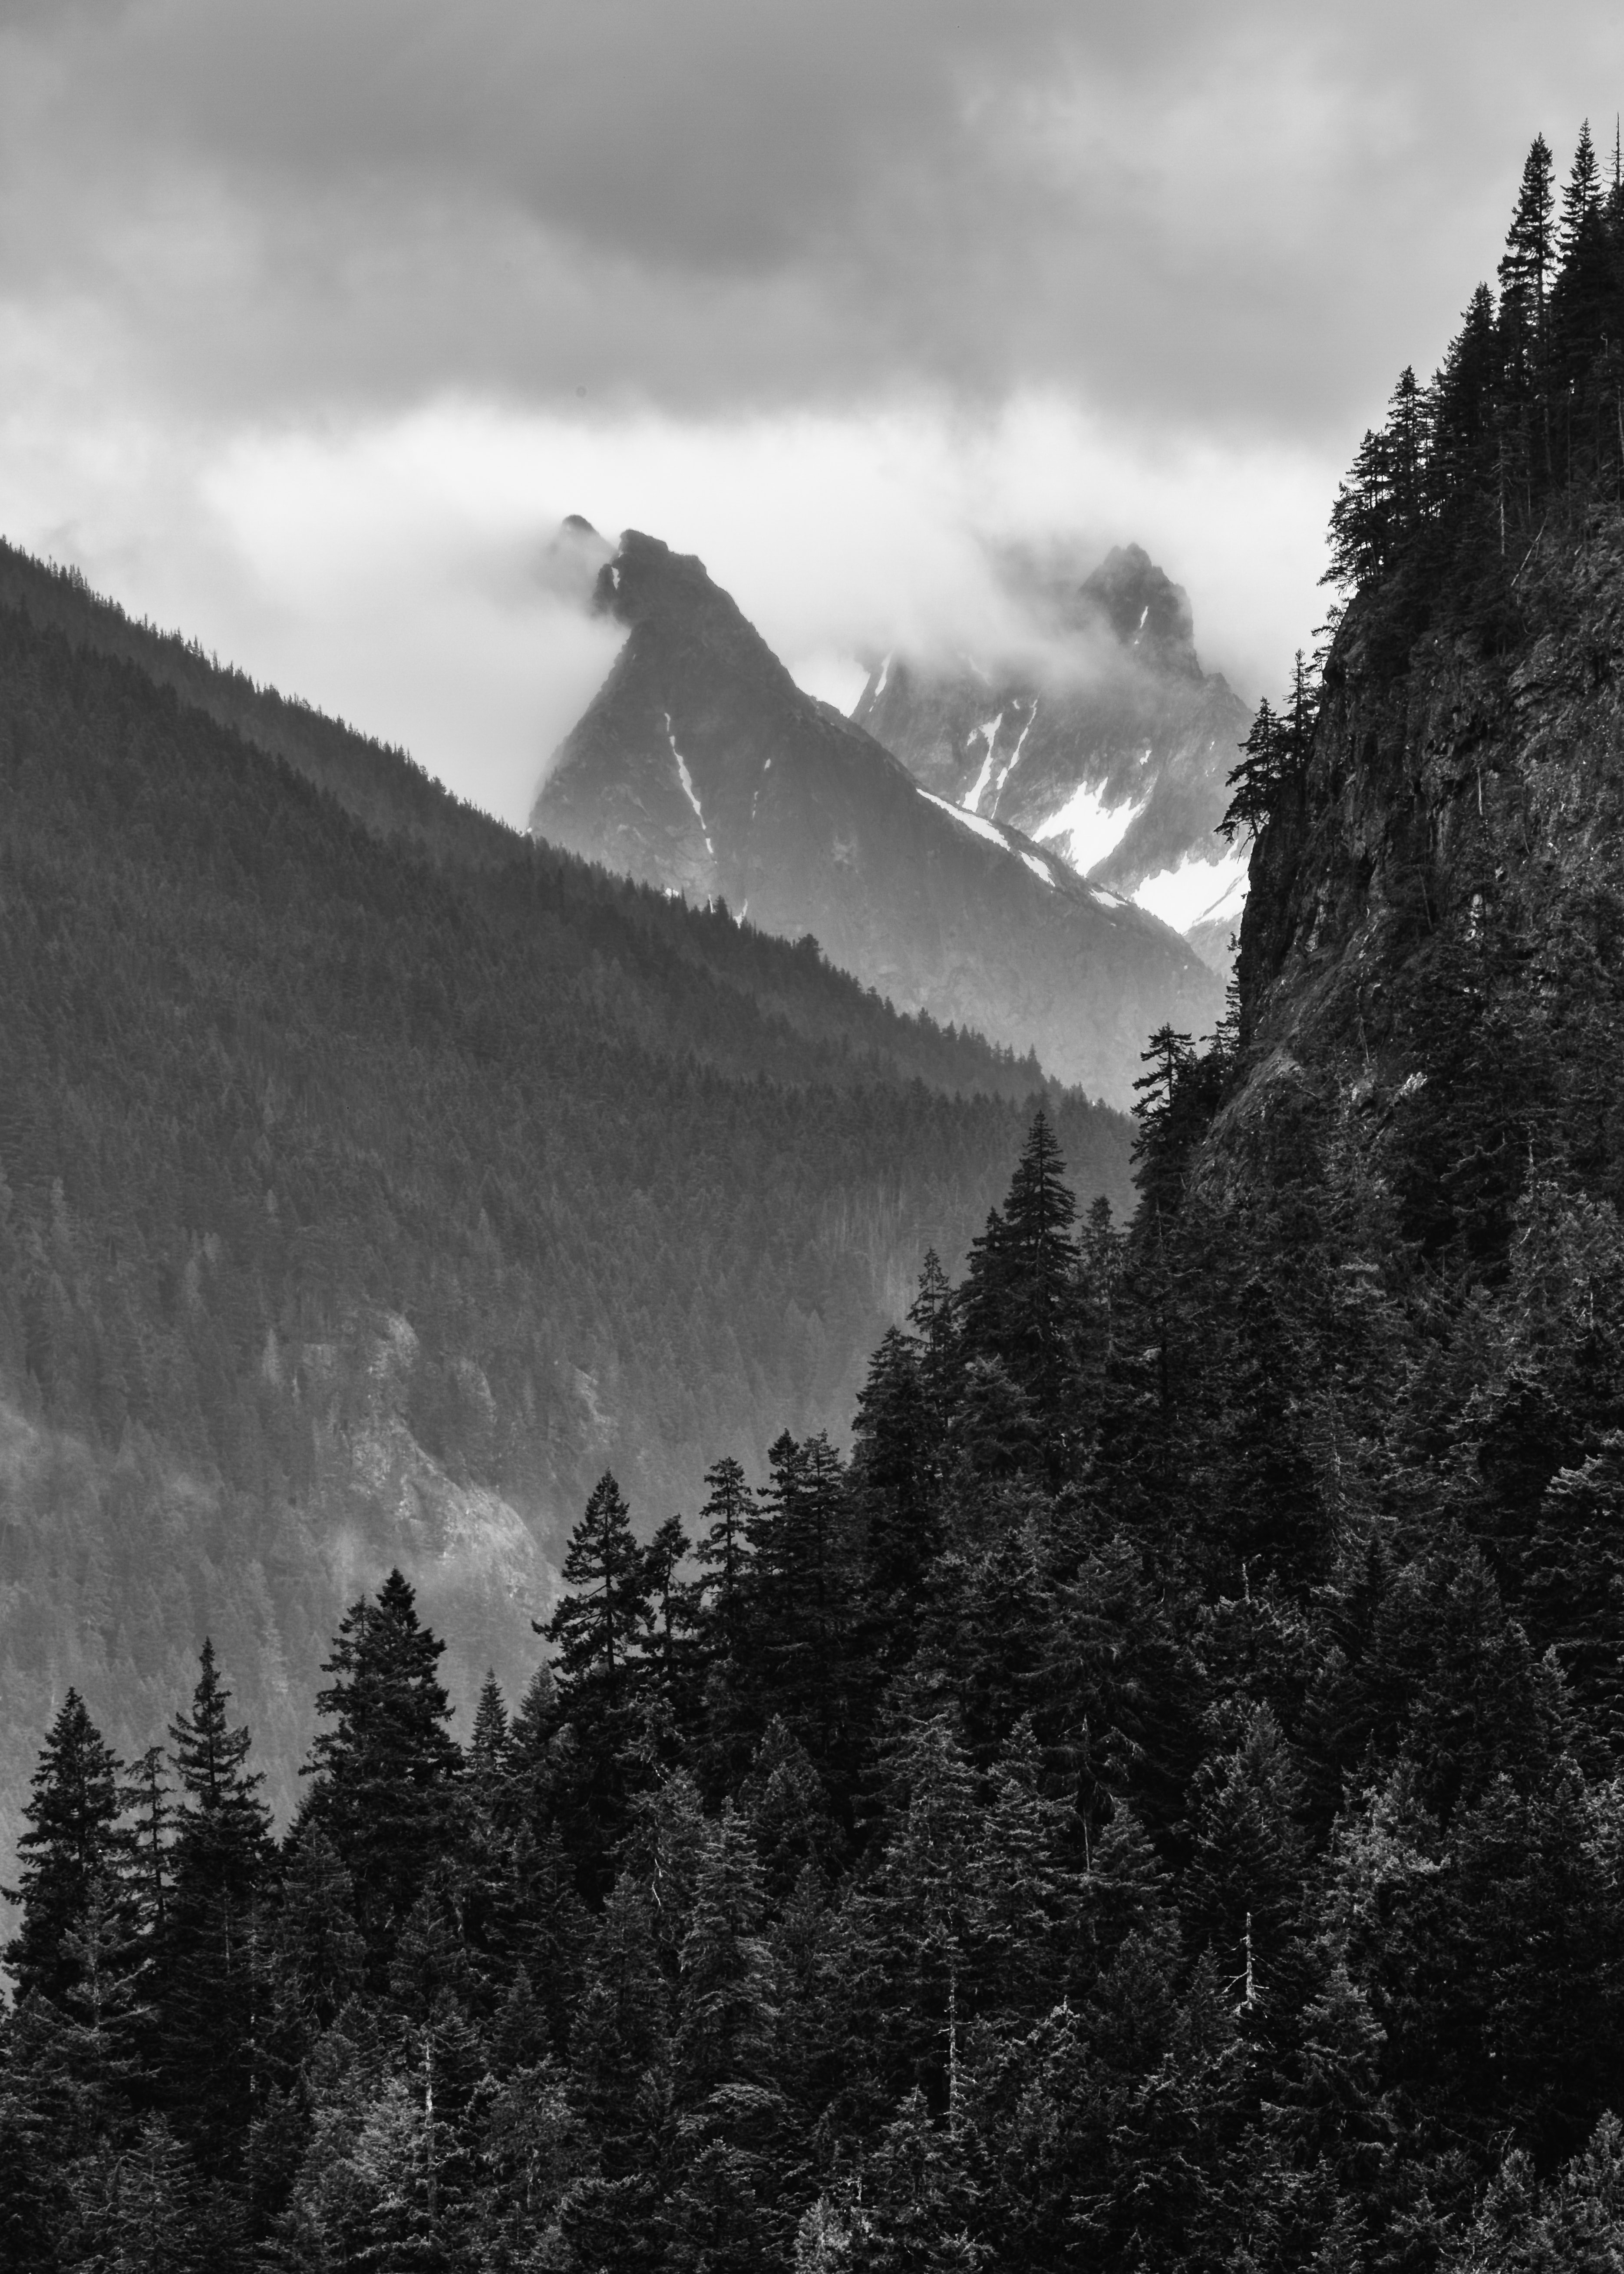 grayscale photo of mountains covered by clouds